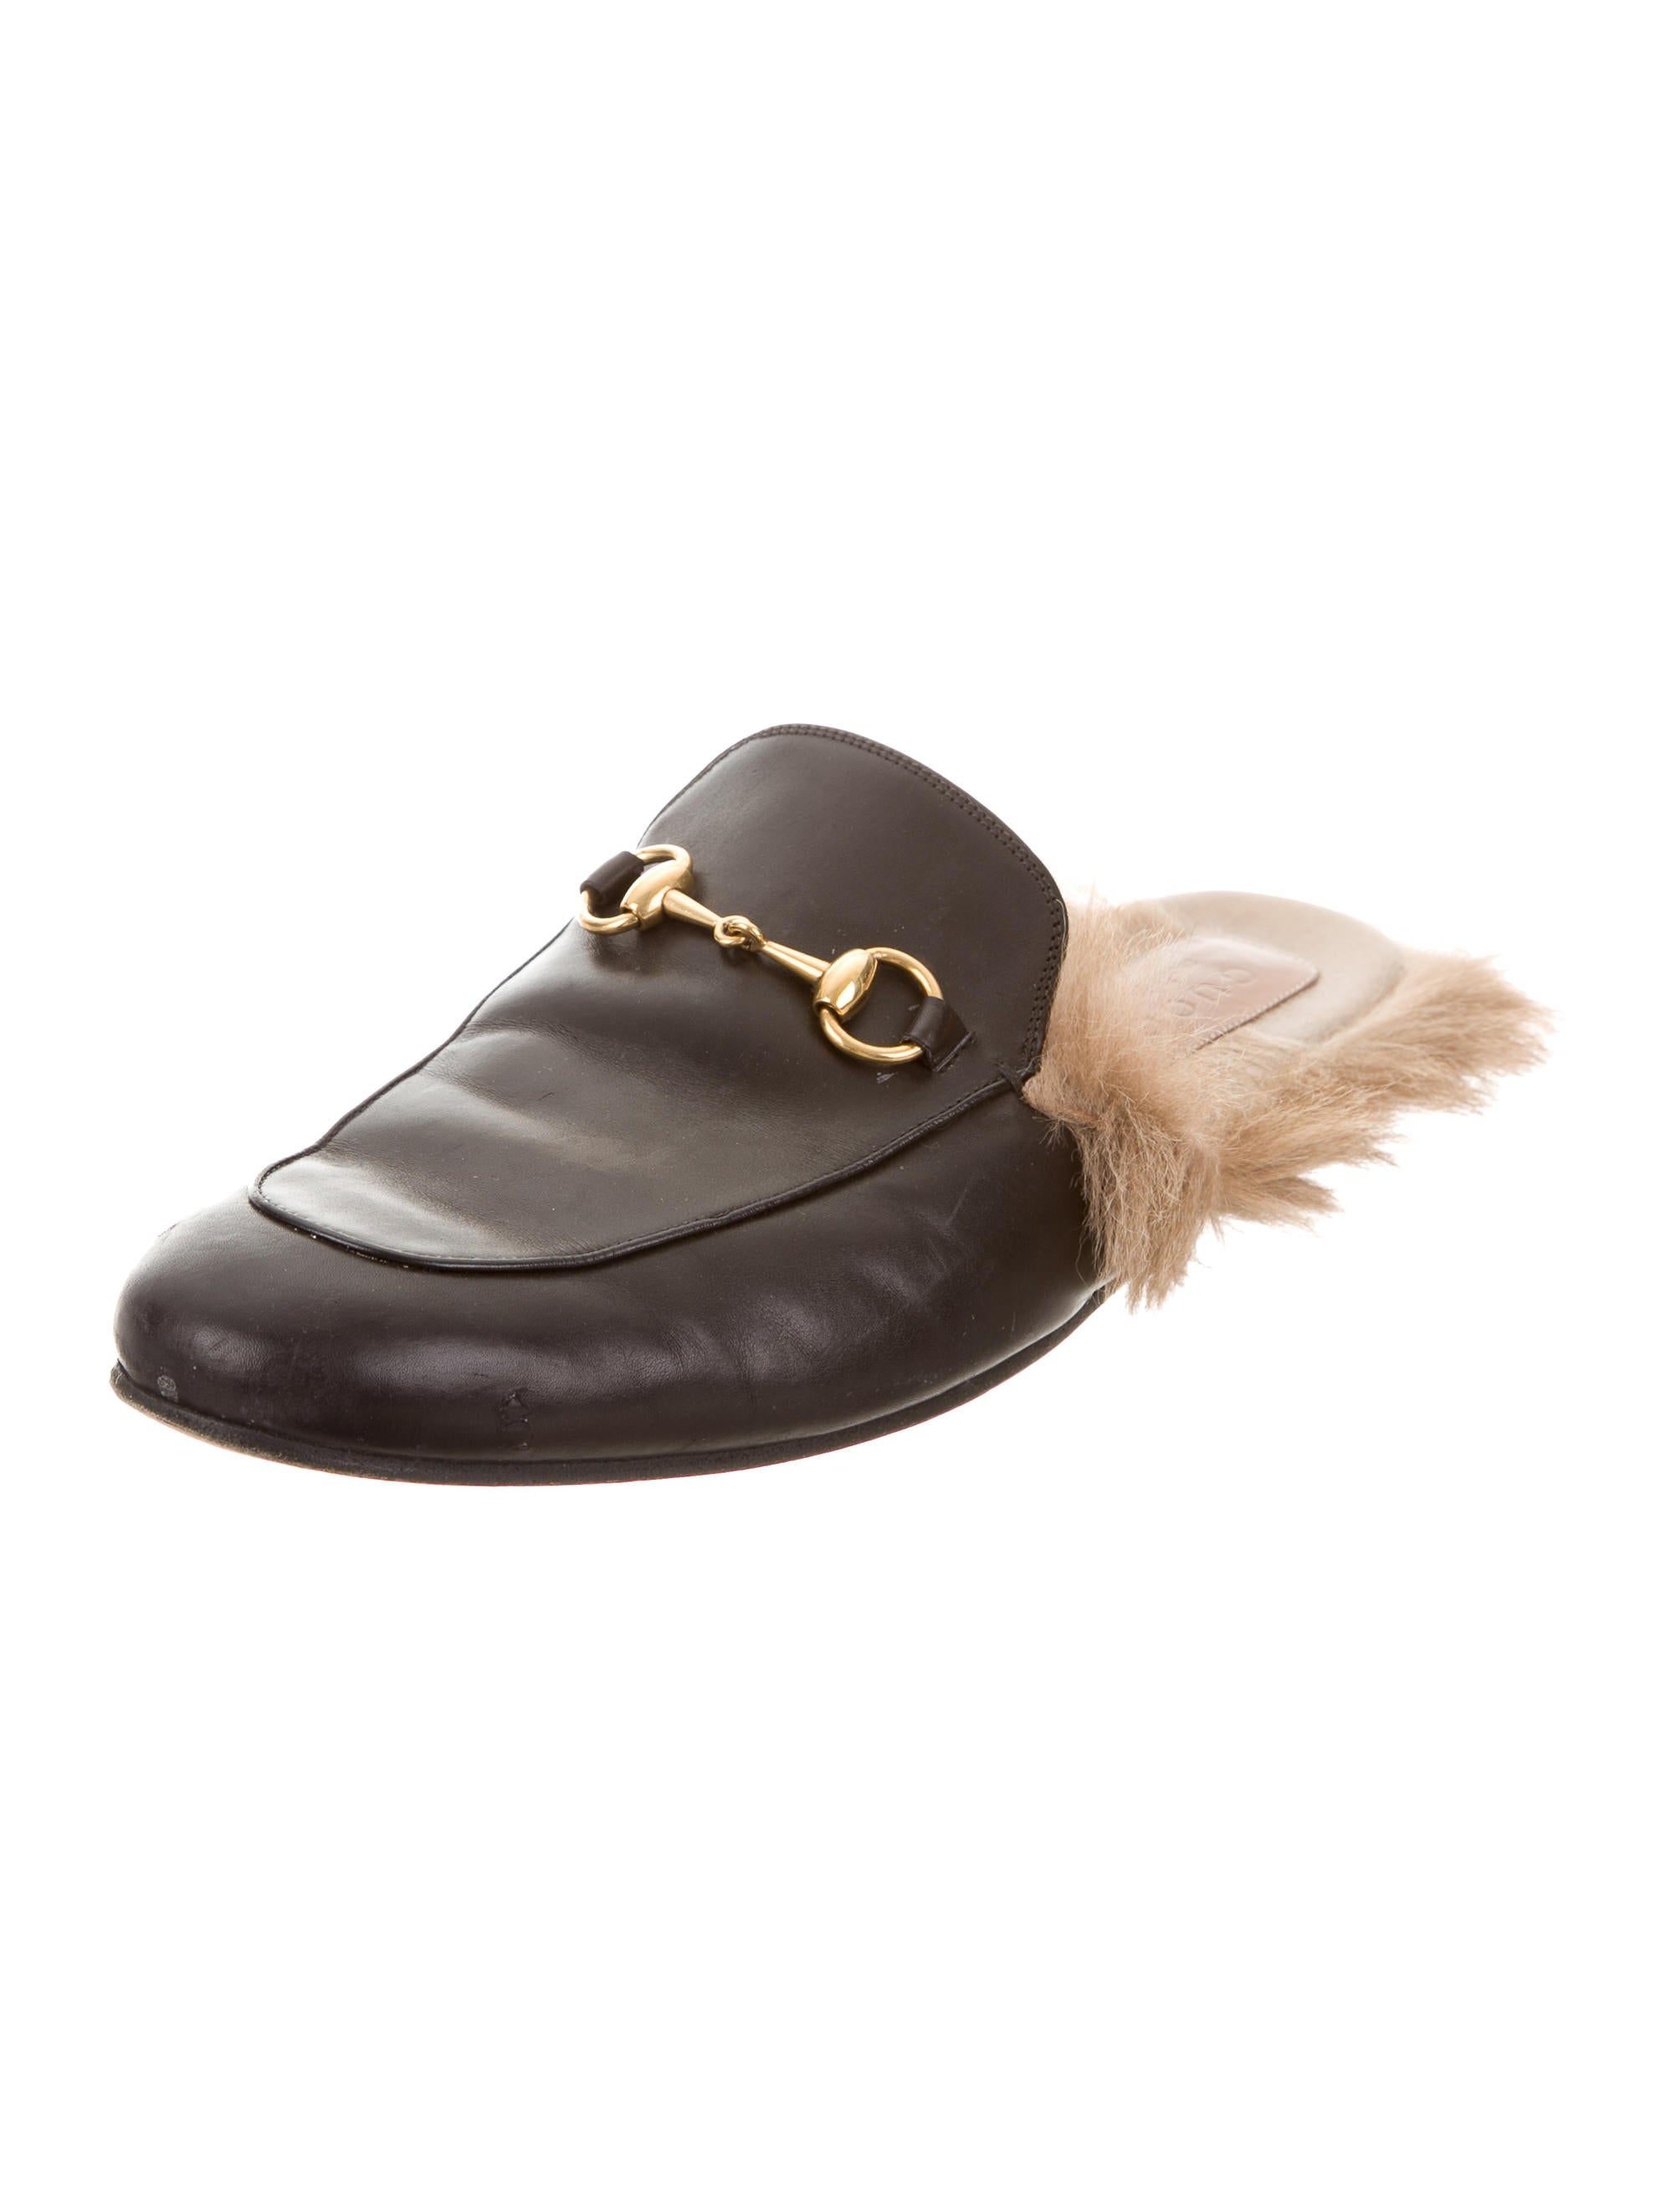 924442a4a08 Gucci Shoe With Fur